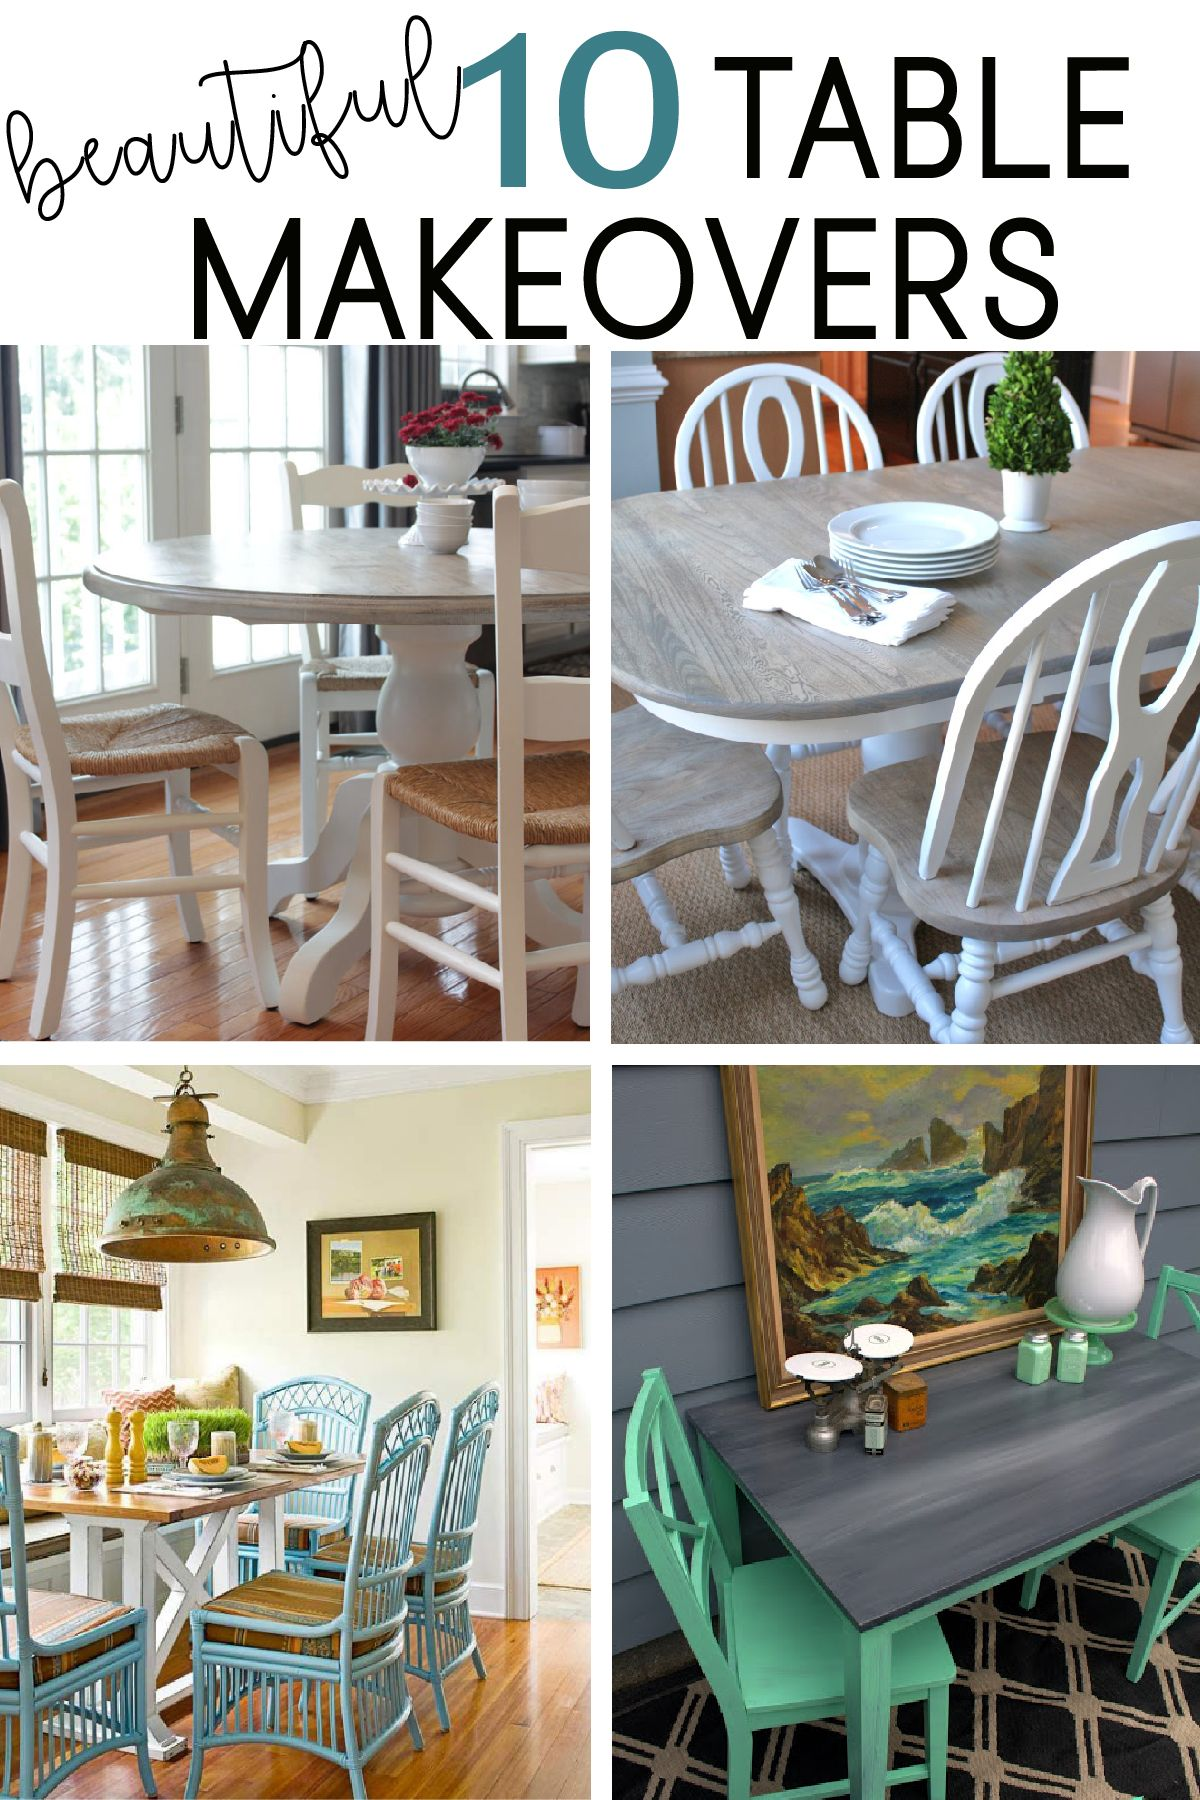 Top 9 Kitchen Table Transformations   Painted Furniture Ideas ...